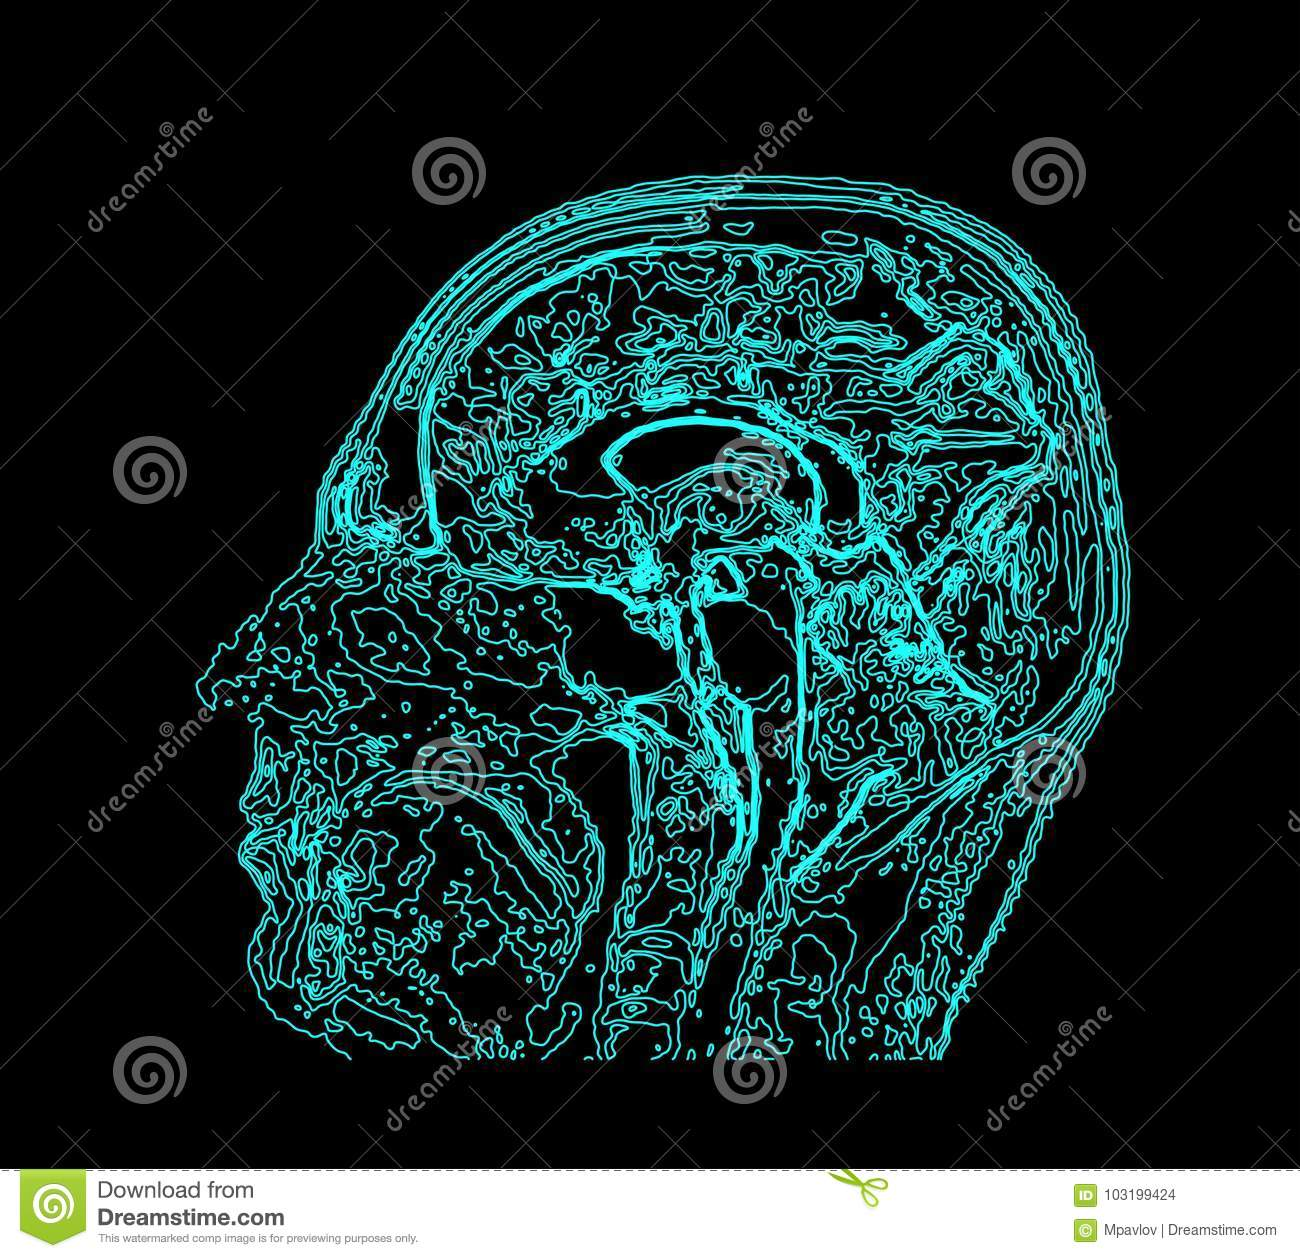 Topographic Map MRI Of The Human Brain. Stock Vector ...